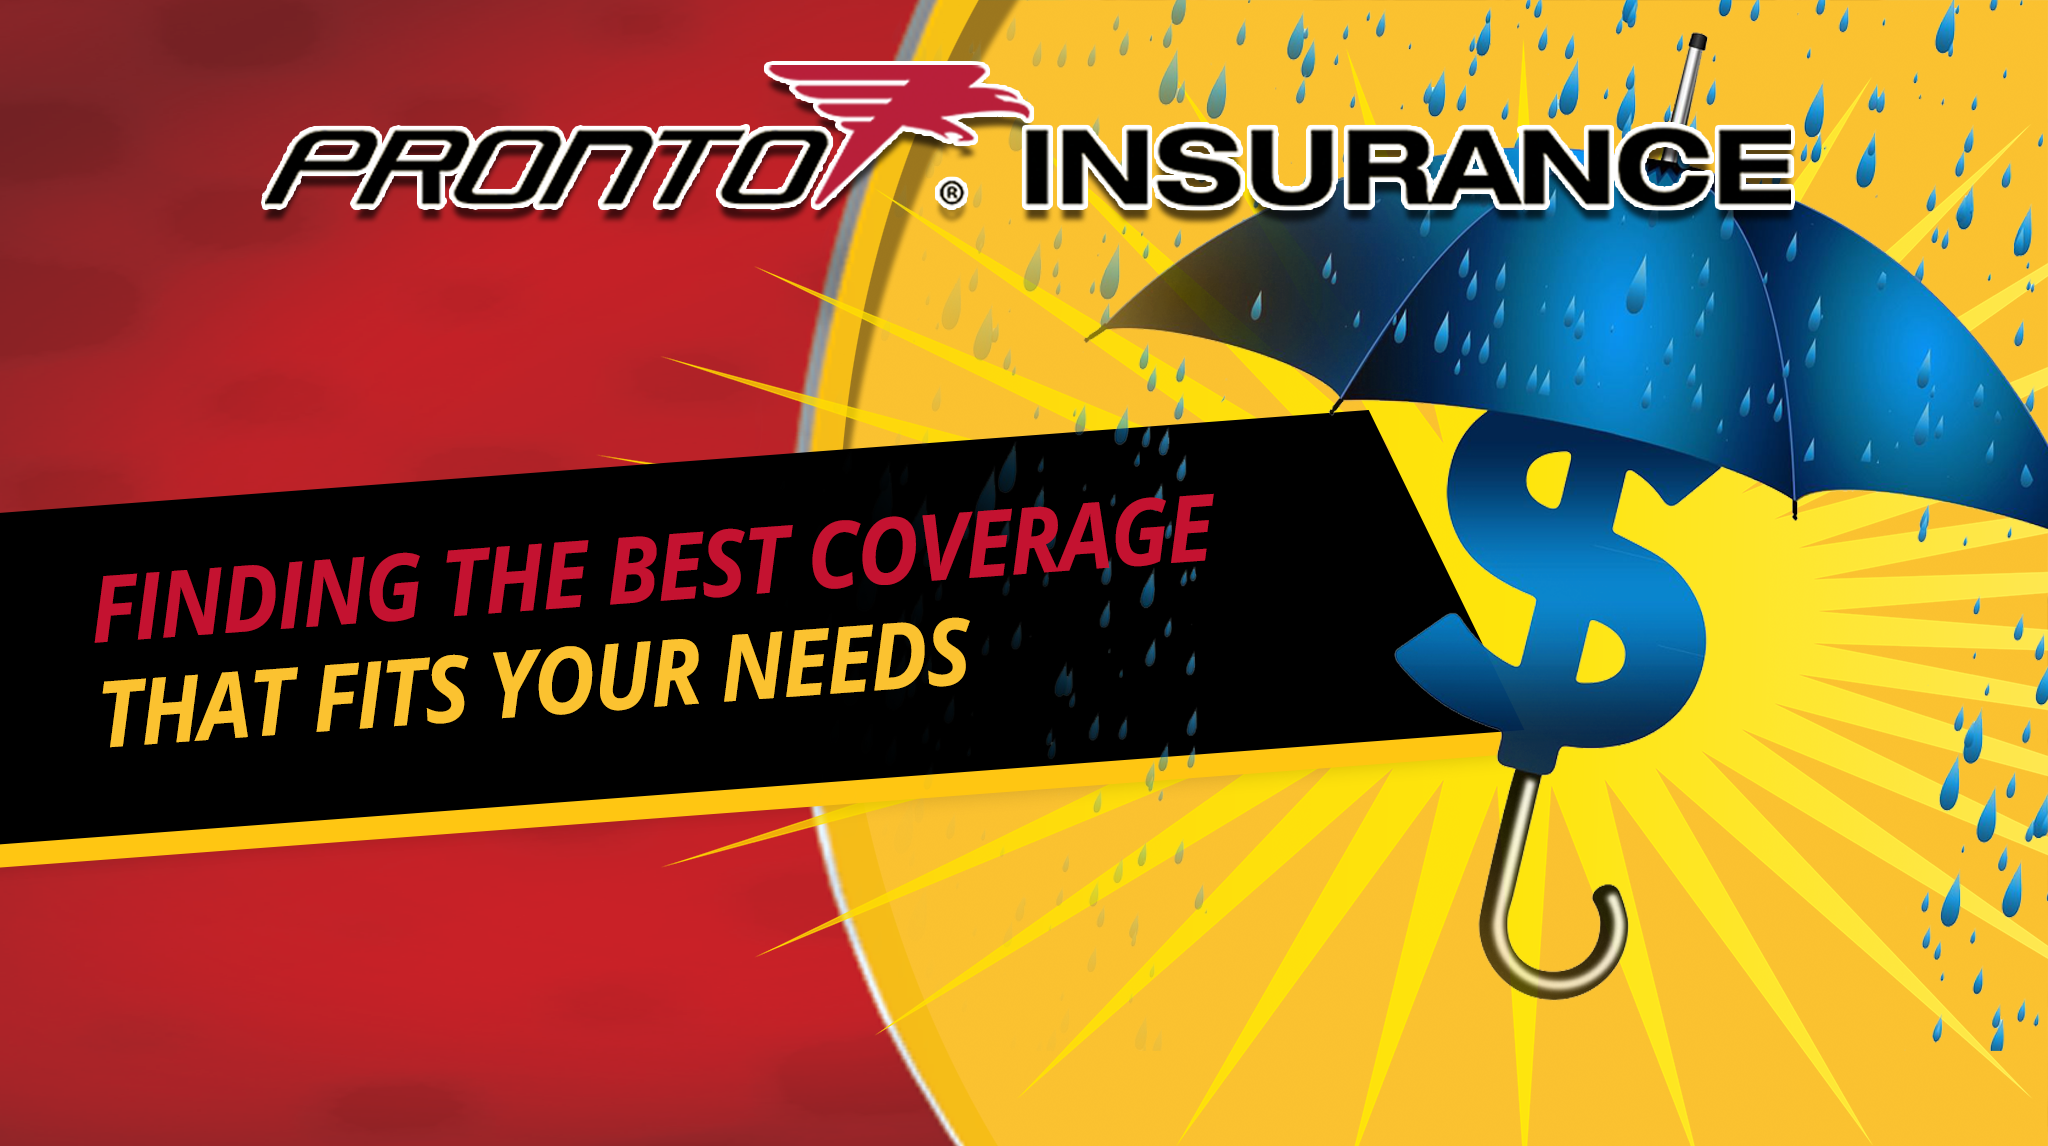 Finding the Best Coverage That Fits Your Needs